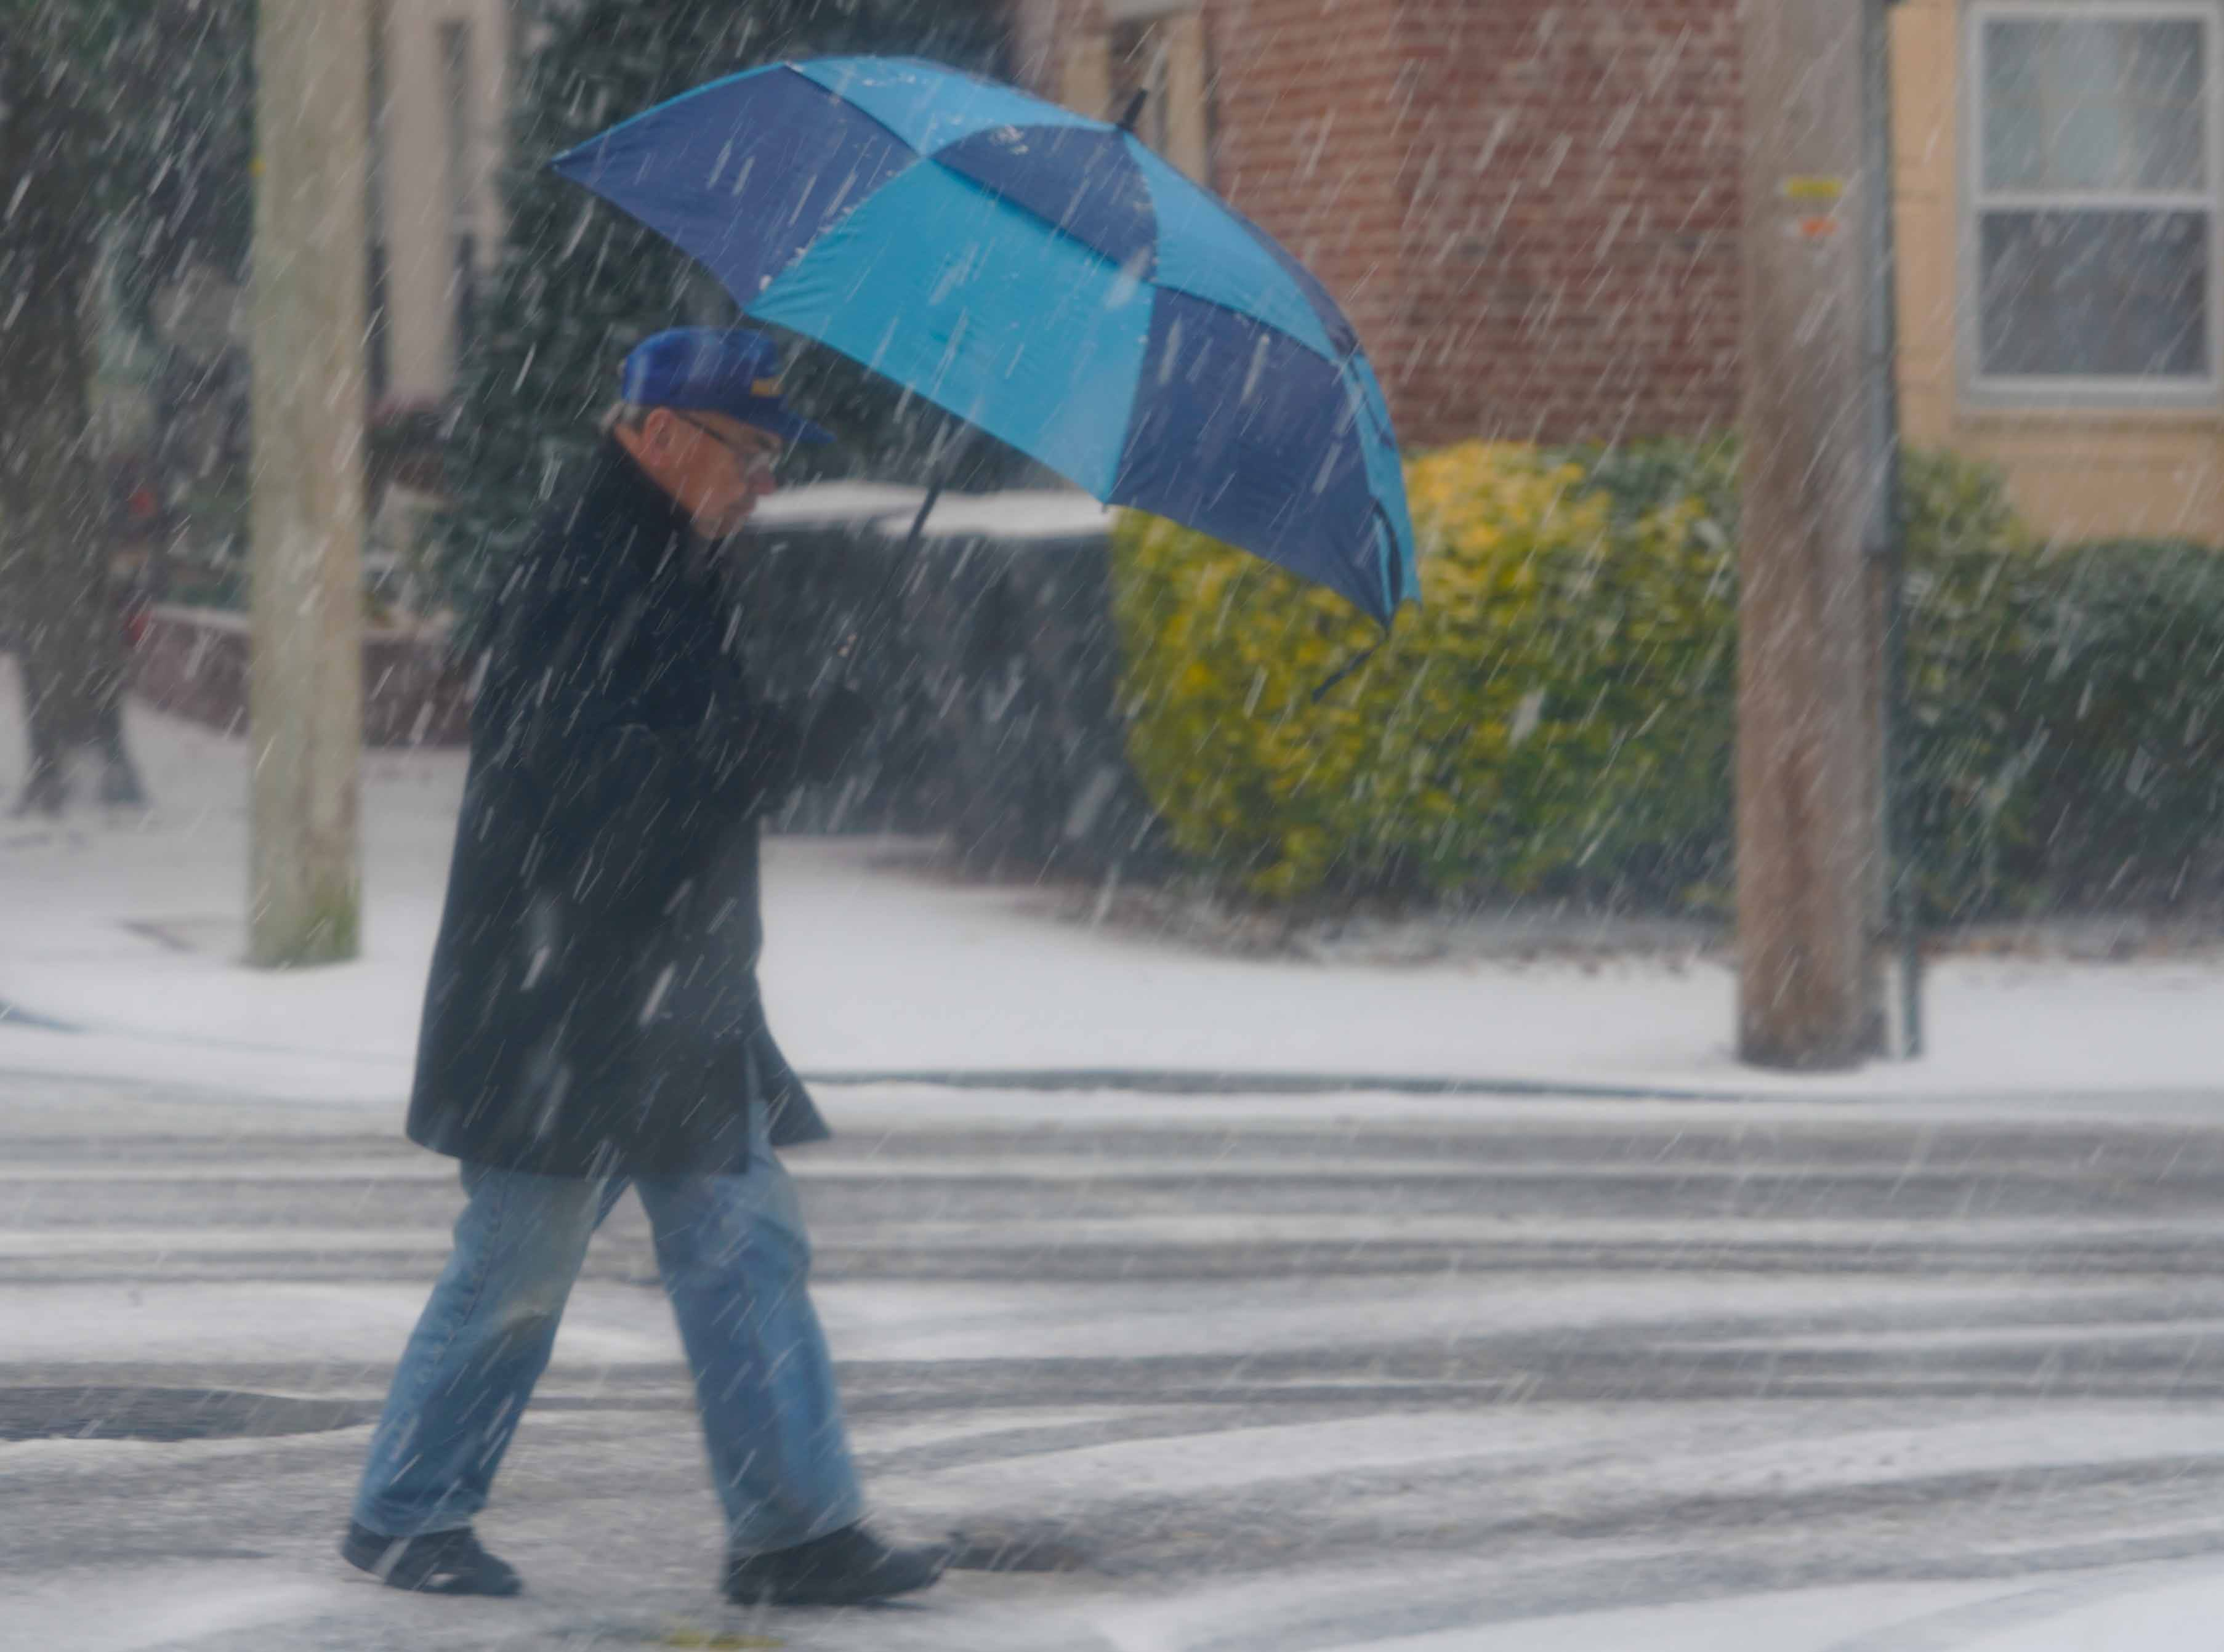 A man takes cover under an umbrella in Old New Castle on Thursday morning as snow falls along Delaware Street.